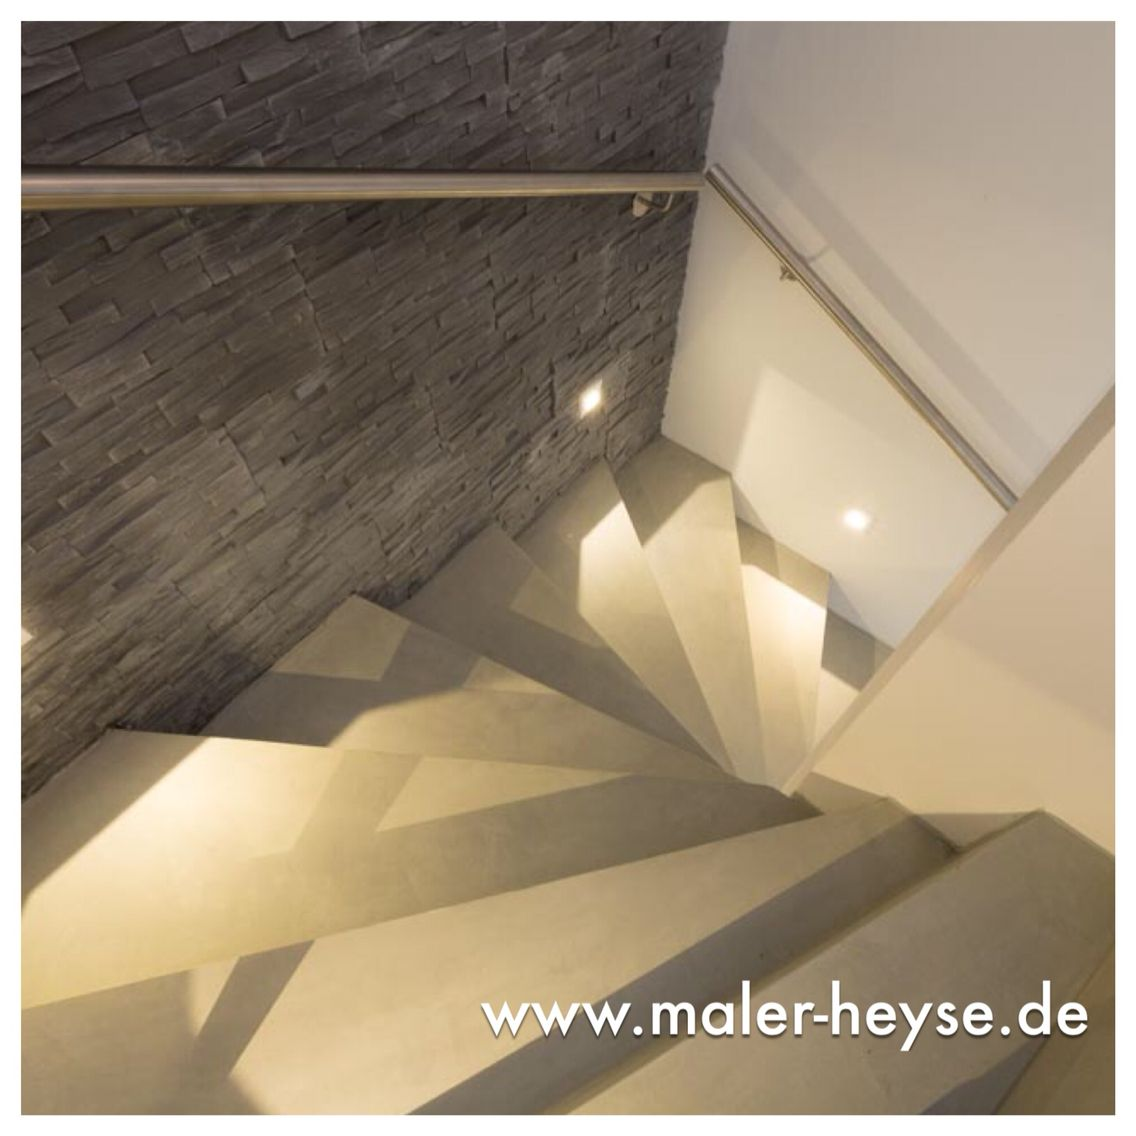 pin von meinmaler das partnernetzwerk auf betonoptik pinterest treppe betonoptik und haus. Black Bedroom Furniture Sets. Home Design Ideas